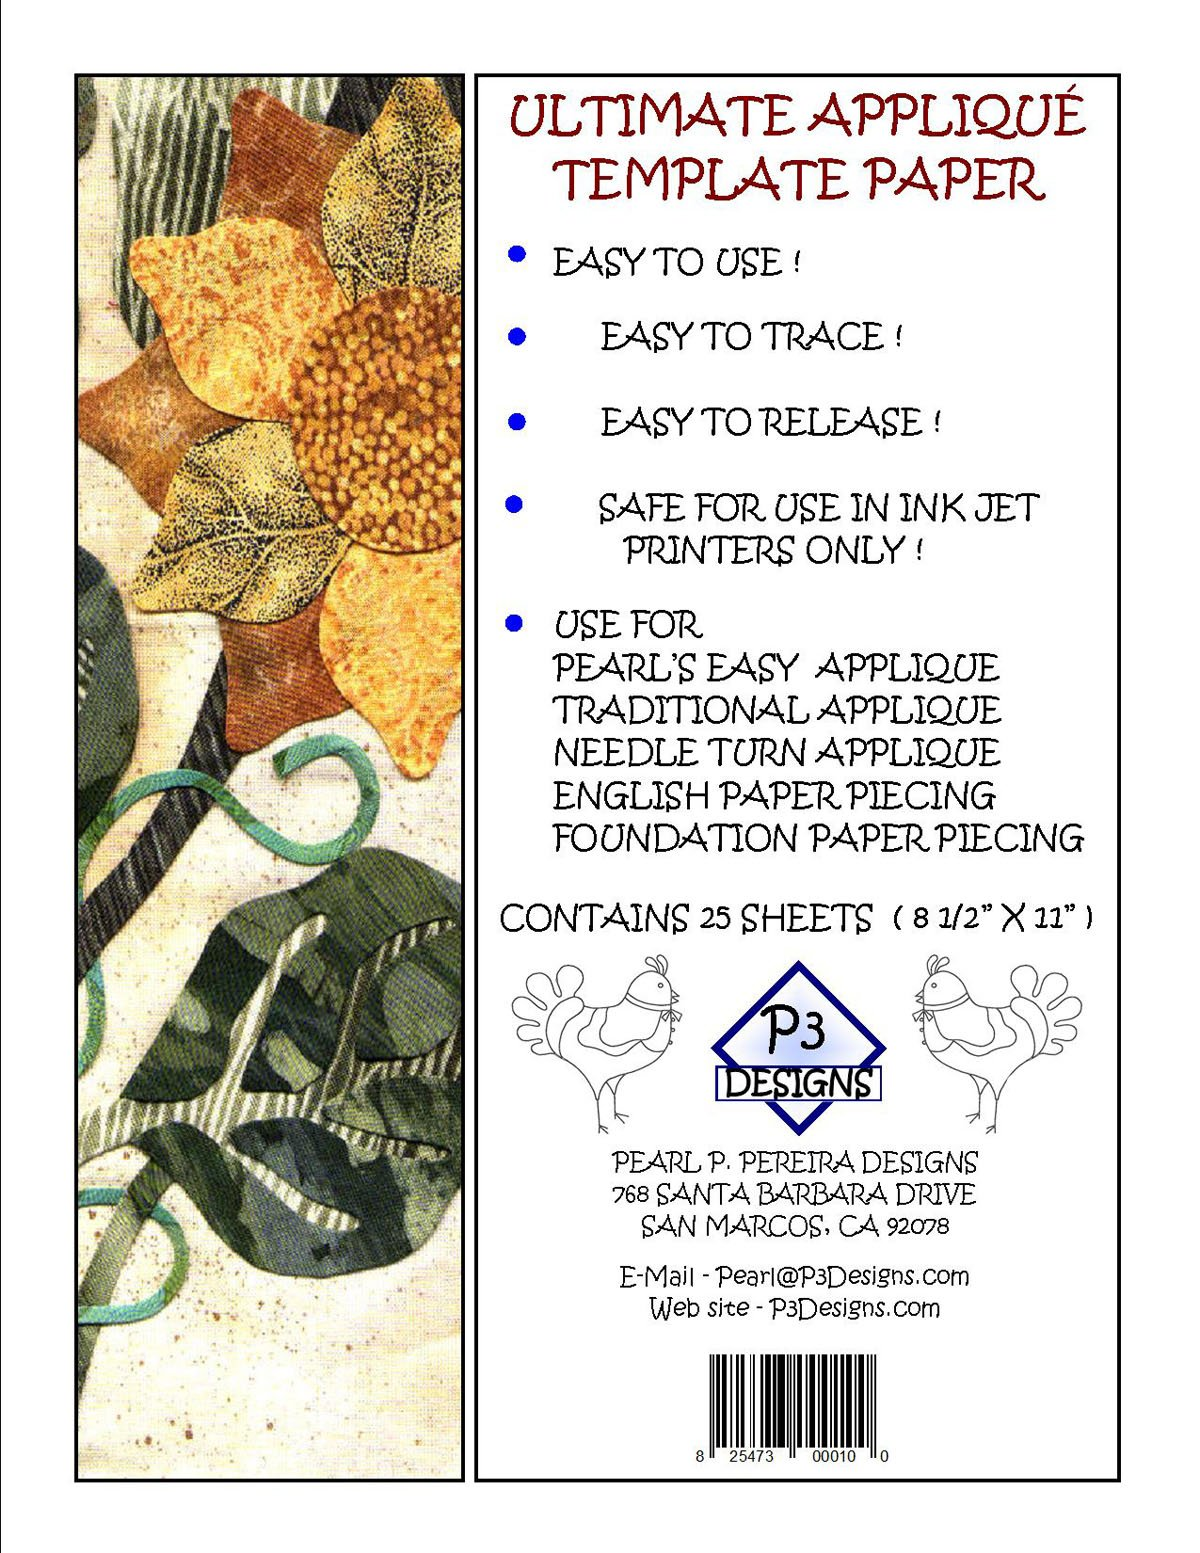 99003 Ultimate Applique Template Paper 8.5 x 11